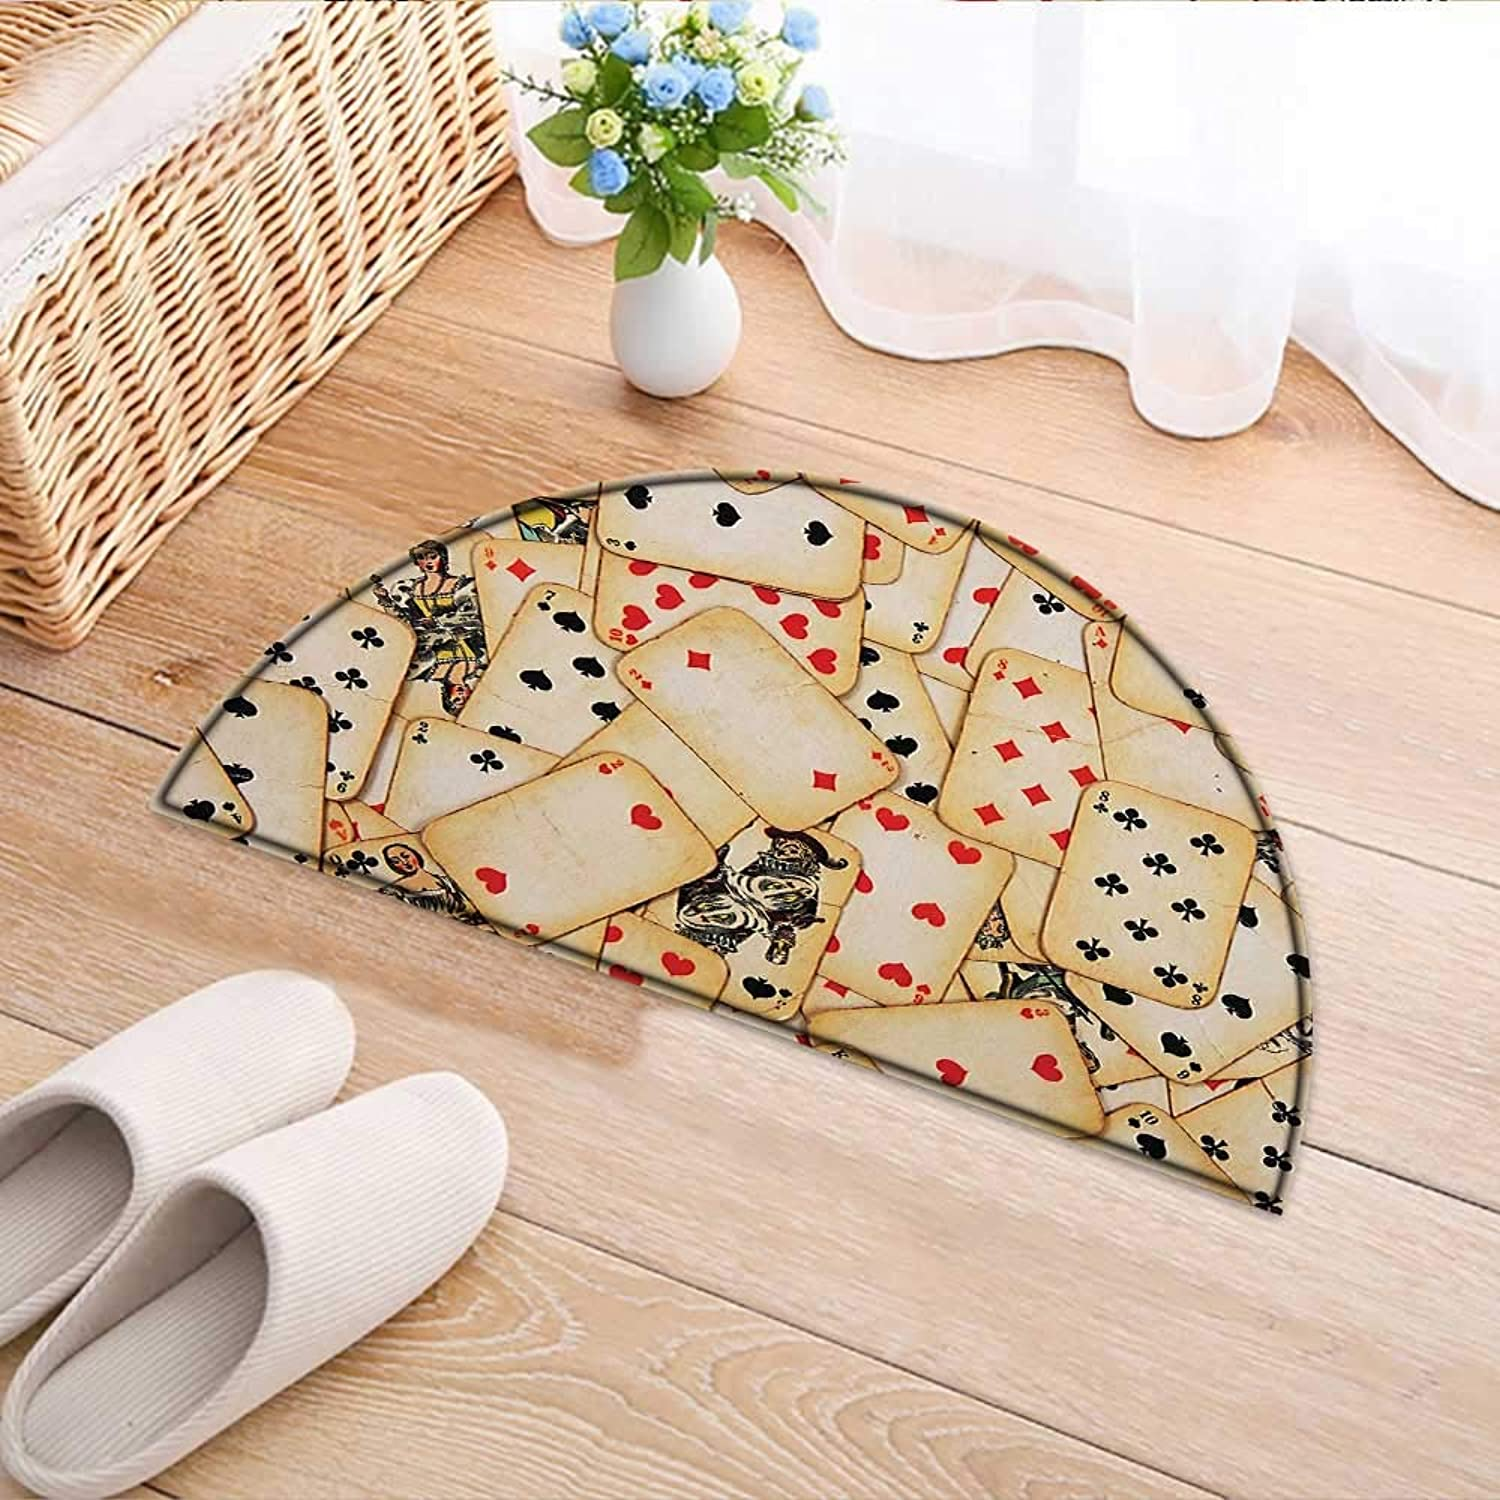 Entrance Hall Carpet Old Playing Cards Vintage Classic Style Entertaining Wealth Fortune Theme Non Slip Rug W39 x H28 INCH